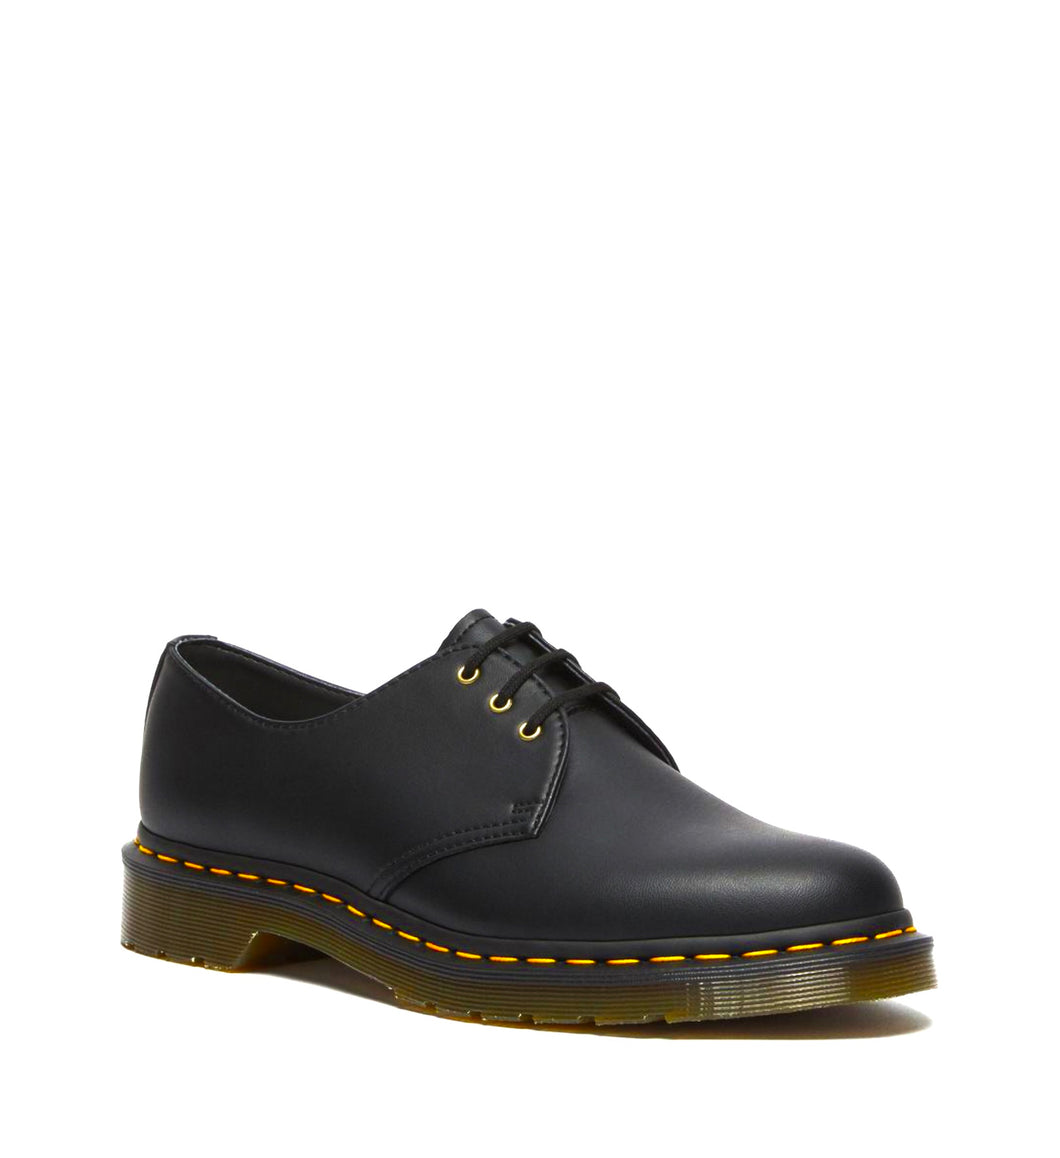 Dr. Martens - 1461 Vegan - Felix Rub Off - Black